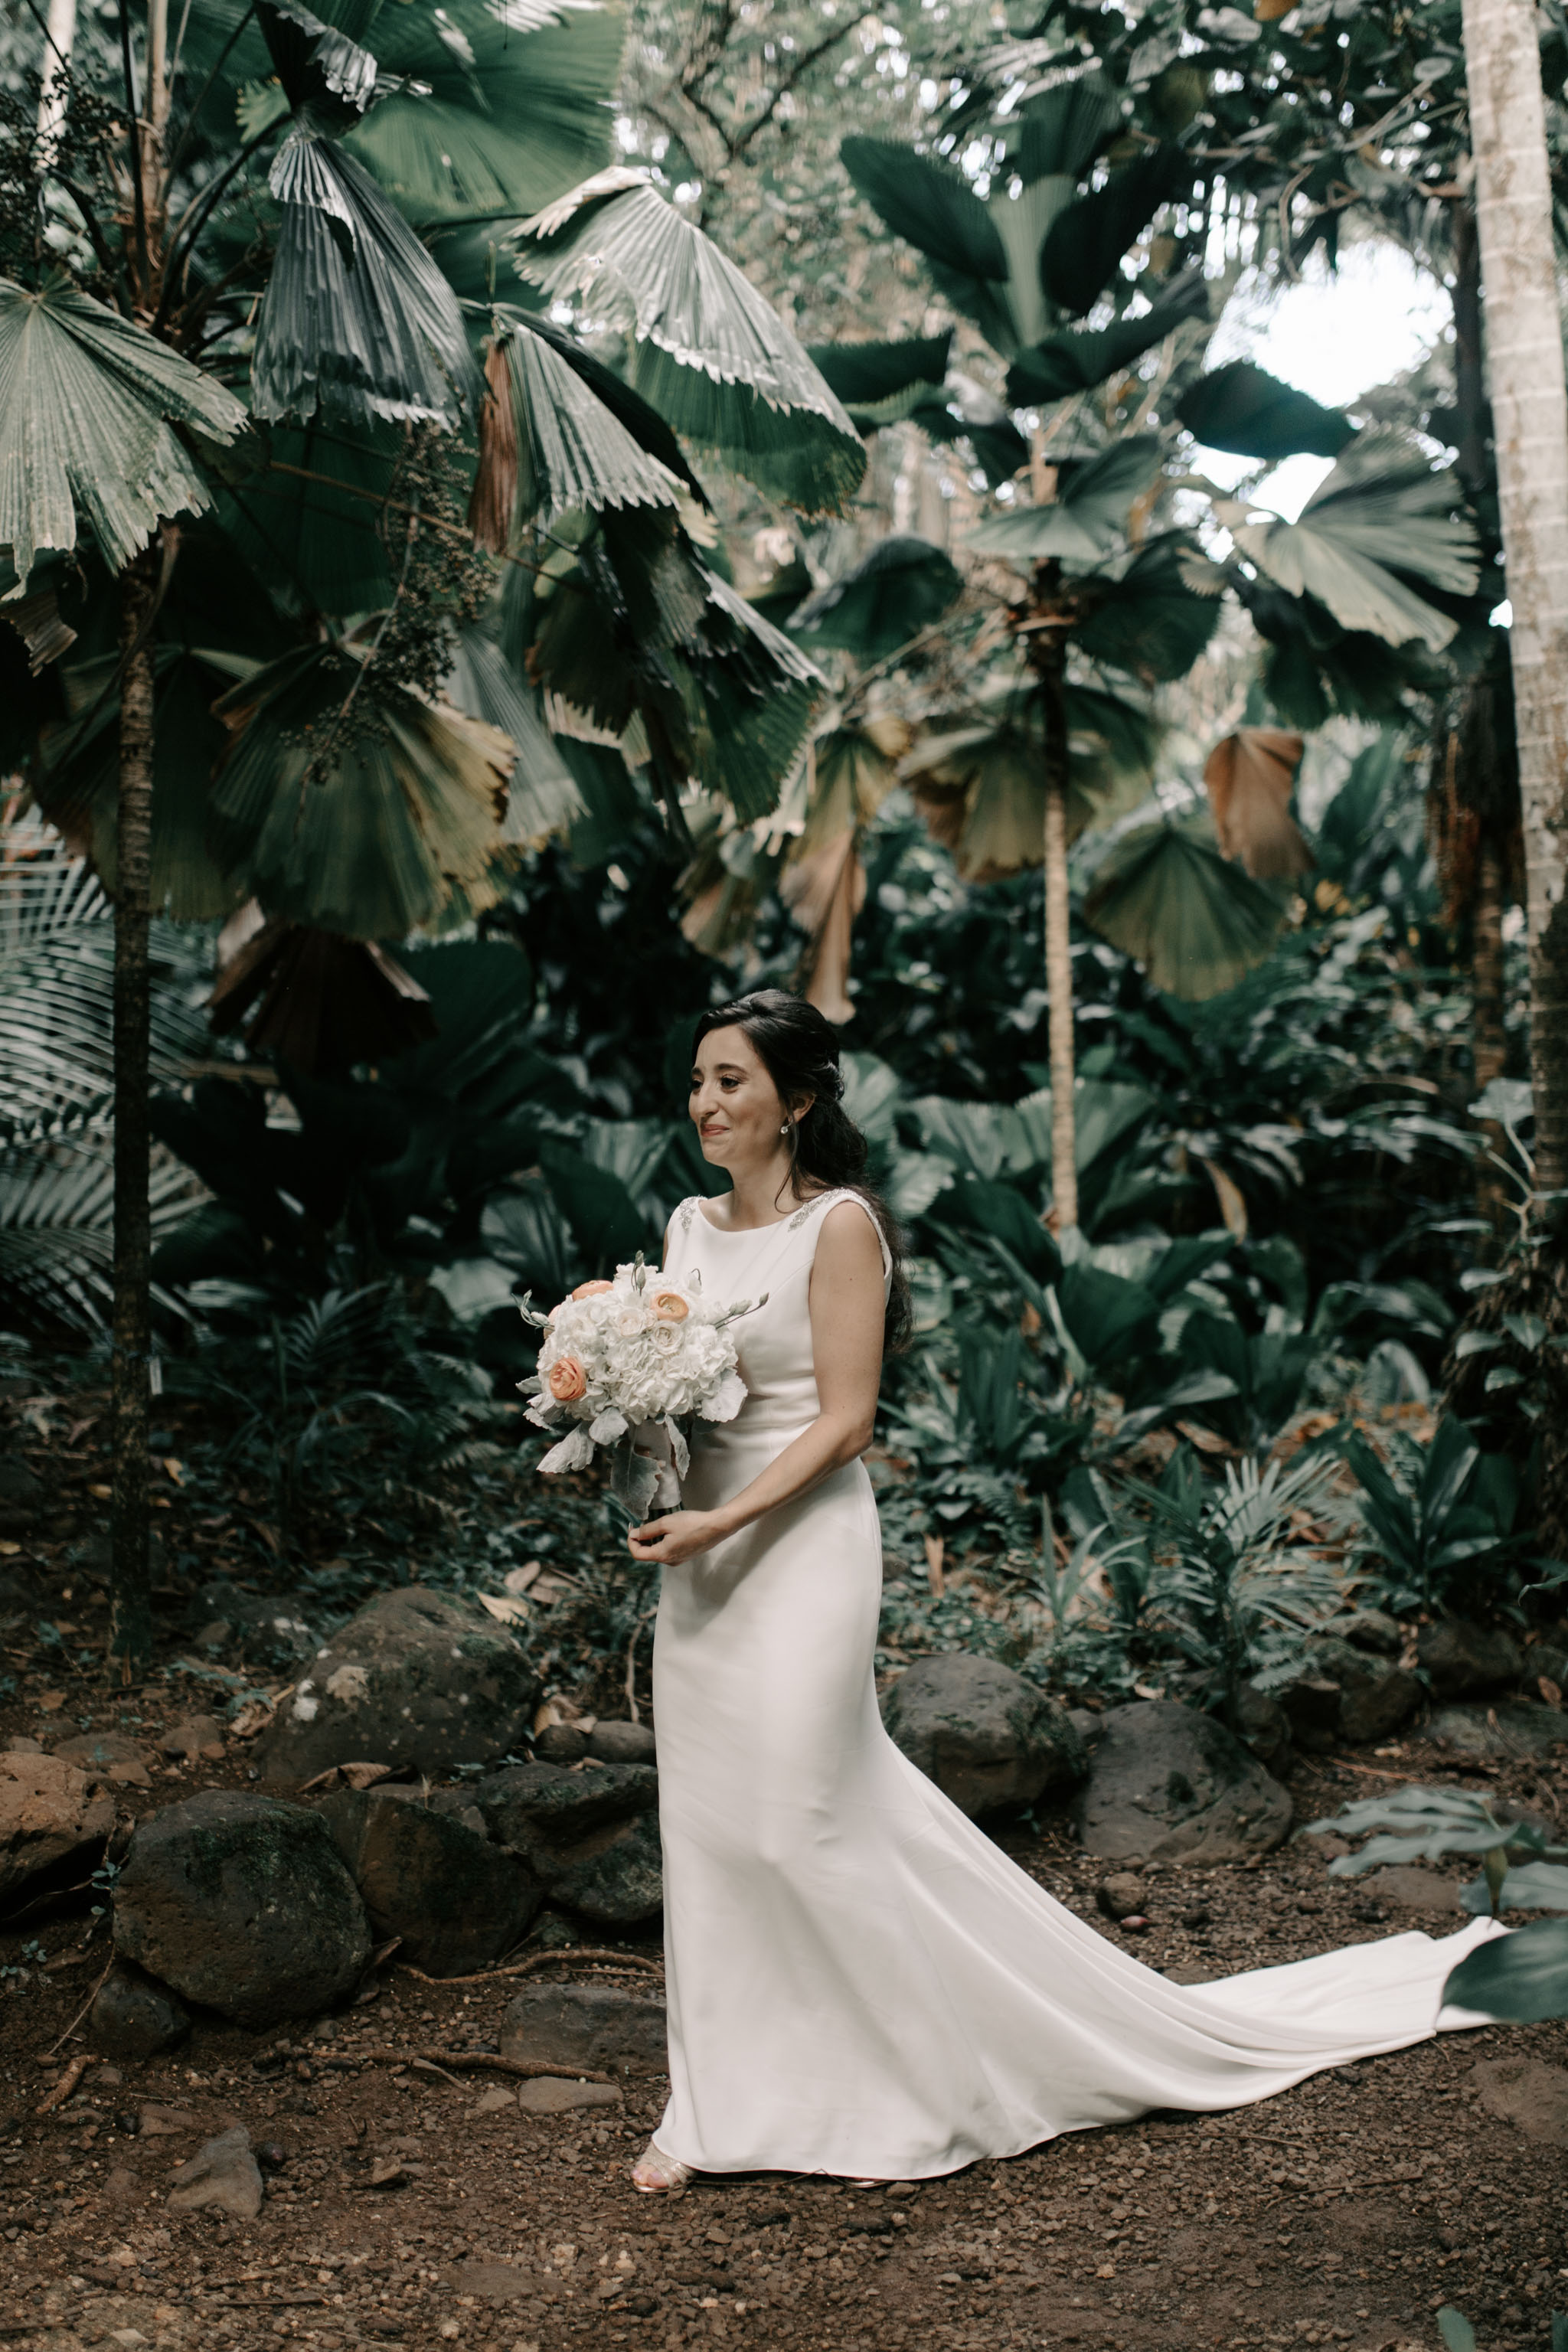 First Look-Waihulili Waterfall Wedding By Kauai Wedding Photographer Desiree Leilani